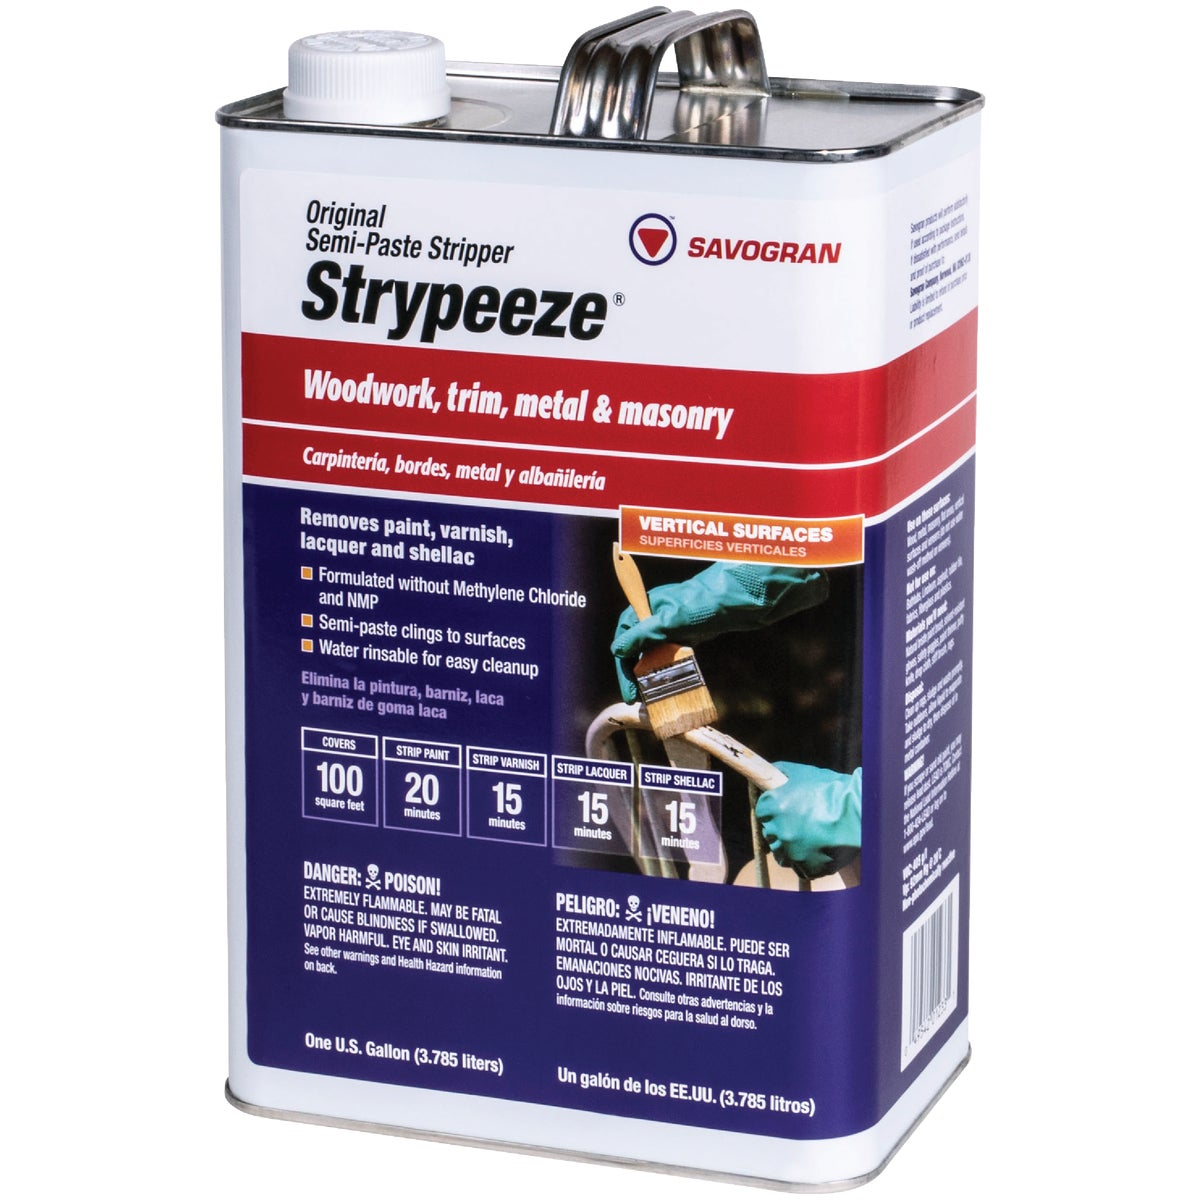 GAL STRYPEEZE REMOVER - 1103 by Savogran Company